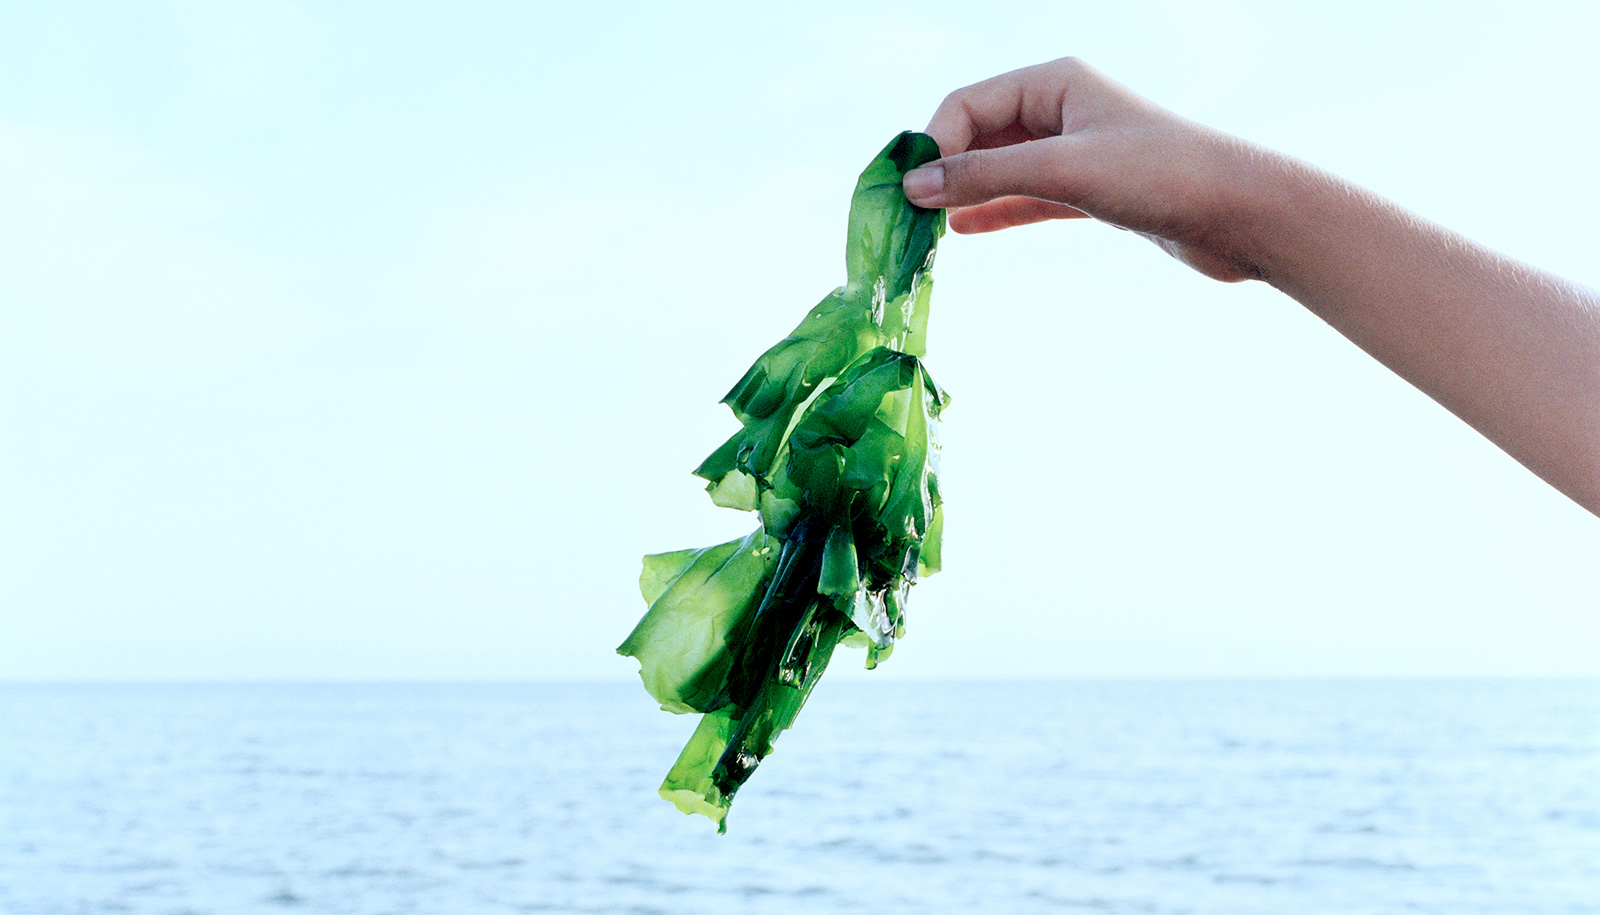 Graphene strengthens seaweed-based smart material